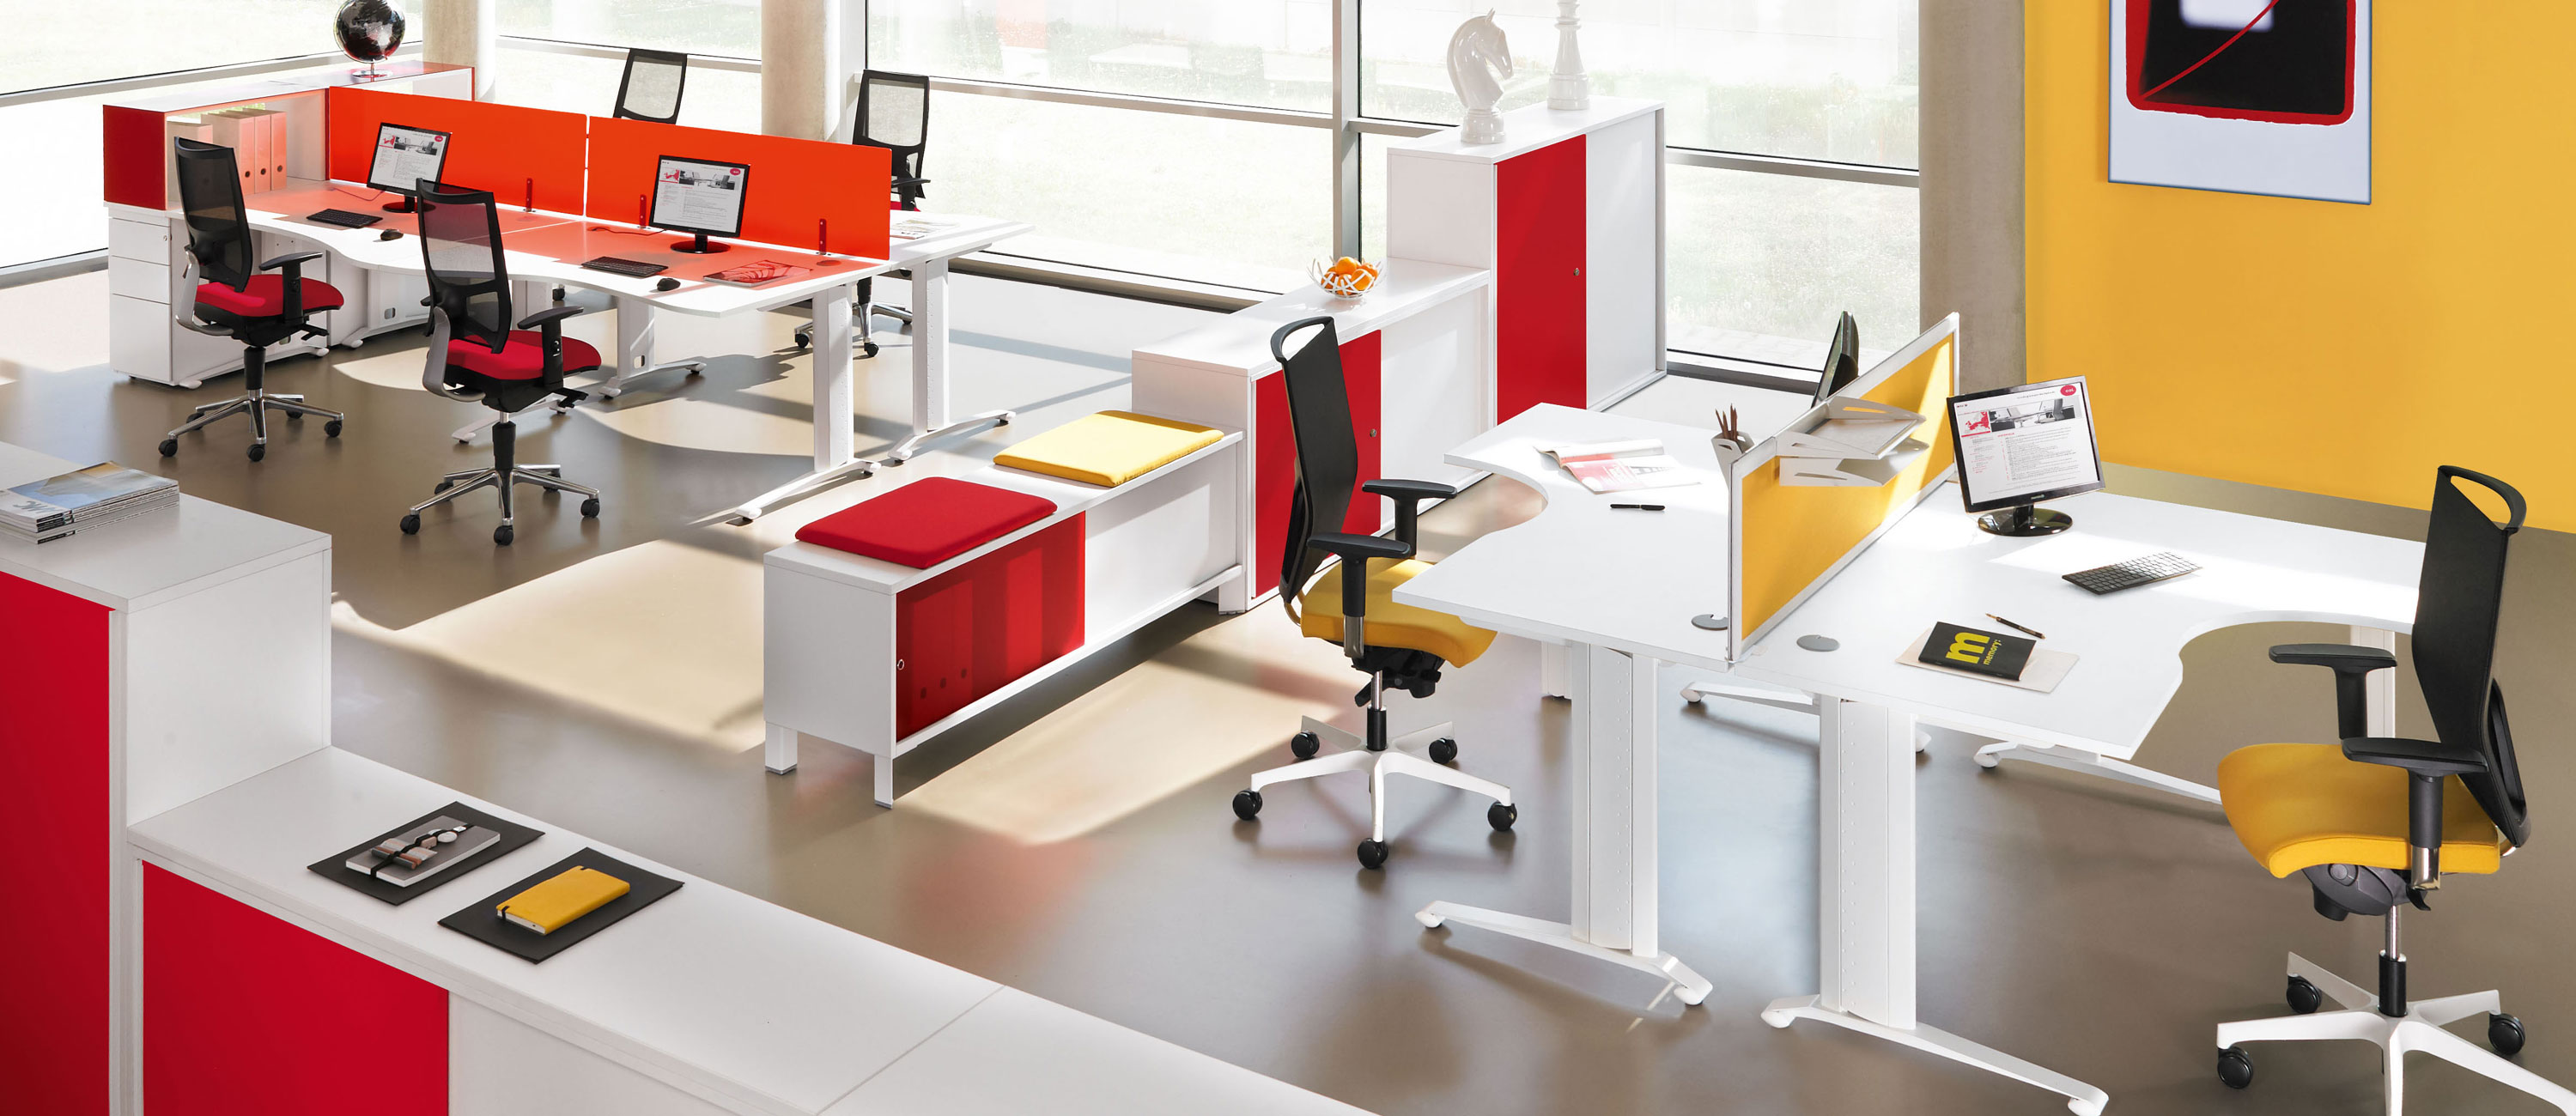 furniture office space. how to save money without giving up style for office furniture? - blog pirate furniture space h